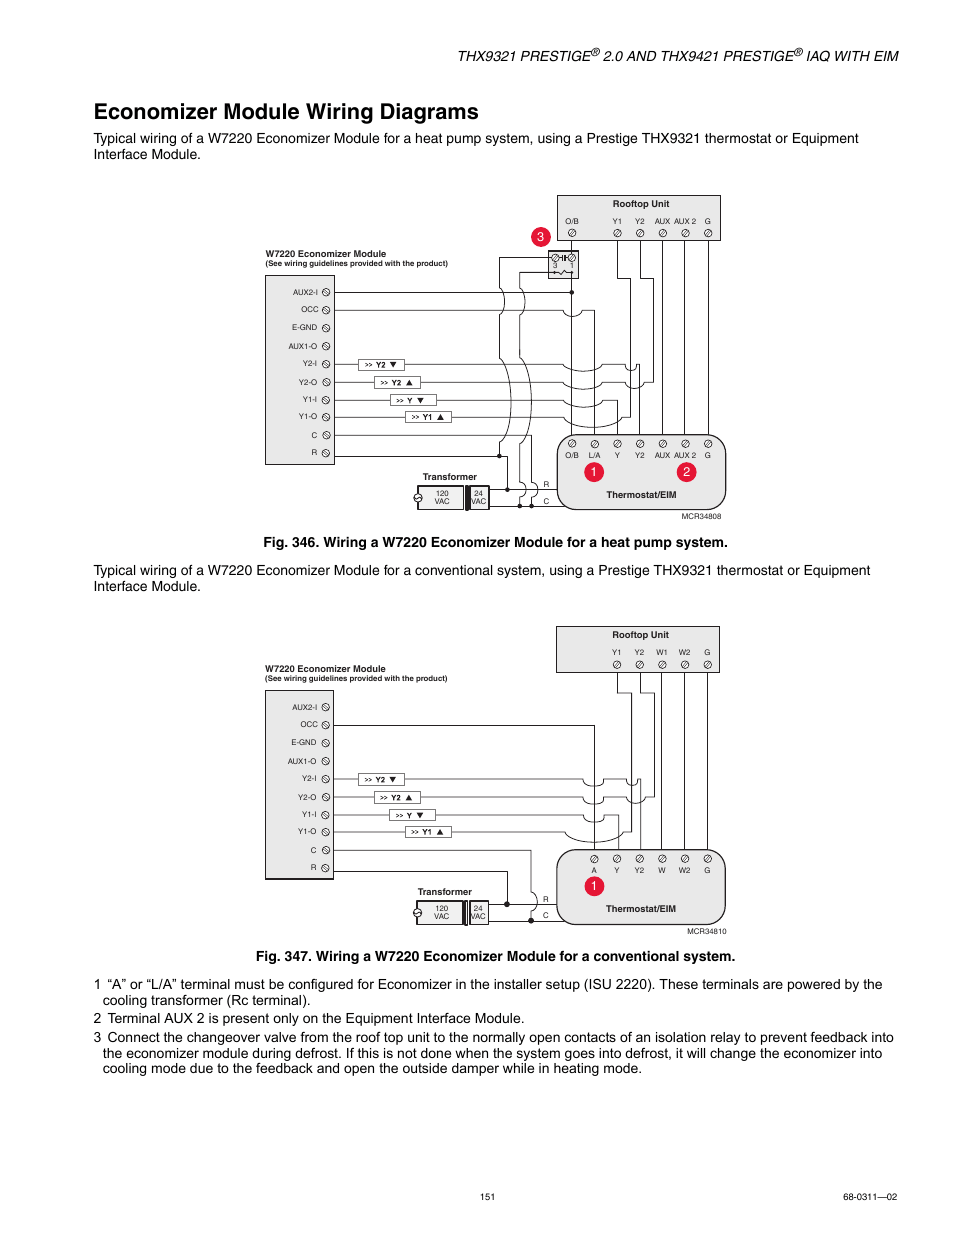 hight resolution of economizer module wiring diagrams thx9321 prestige iaq with eim honeywell prestige thx9321 user manual page 151 160